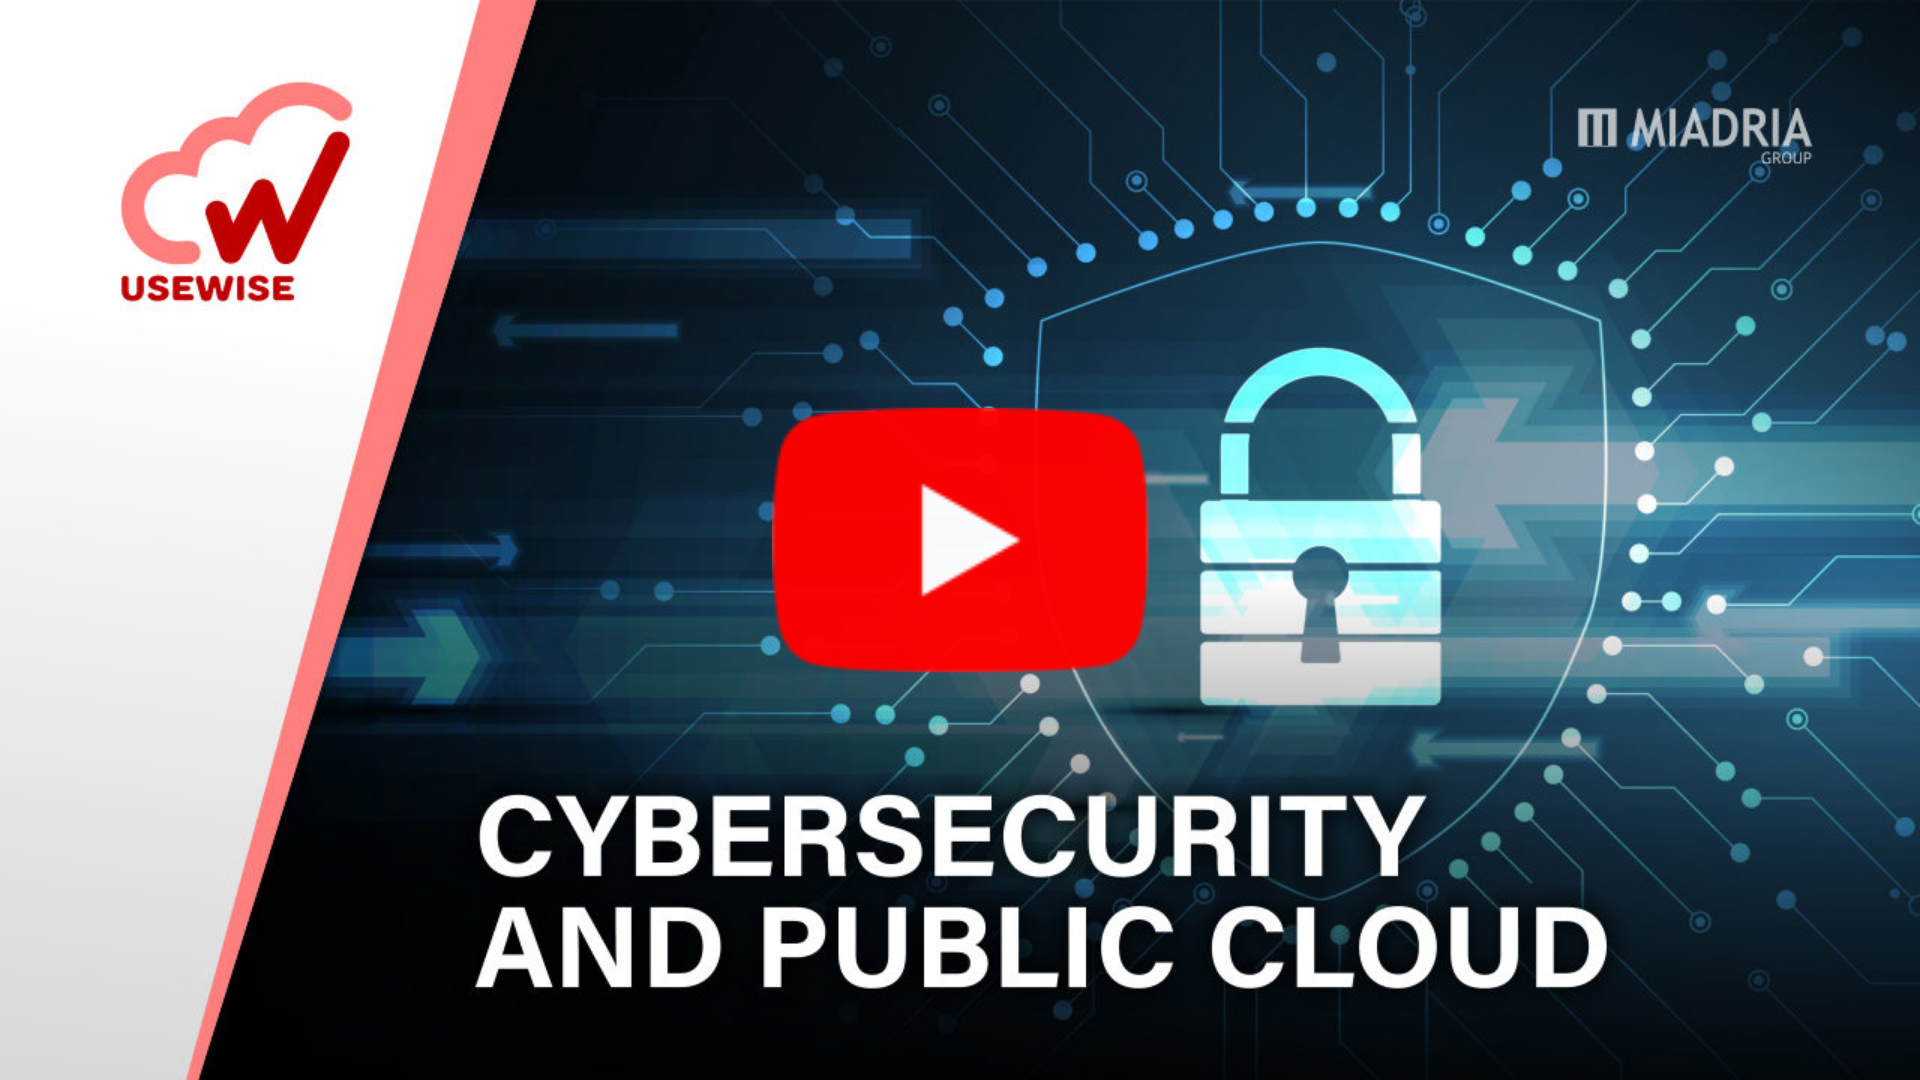 Cybersecurity and public cloud